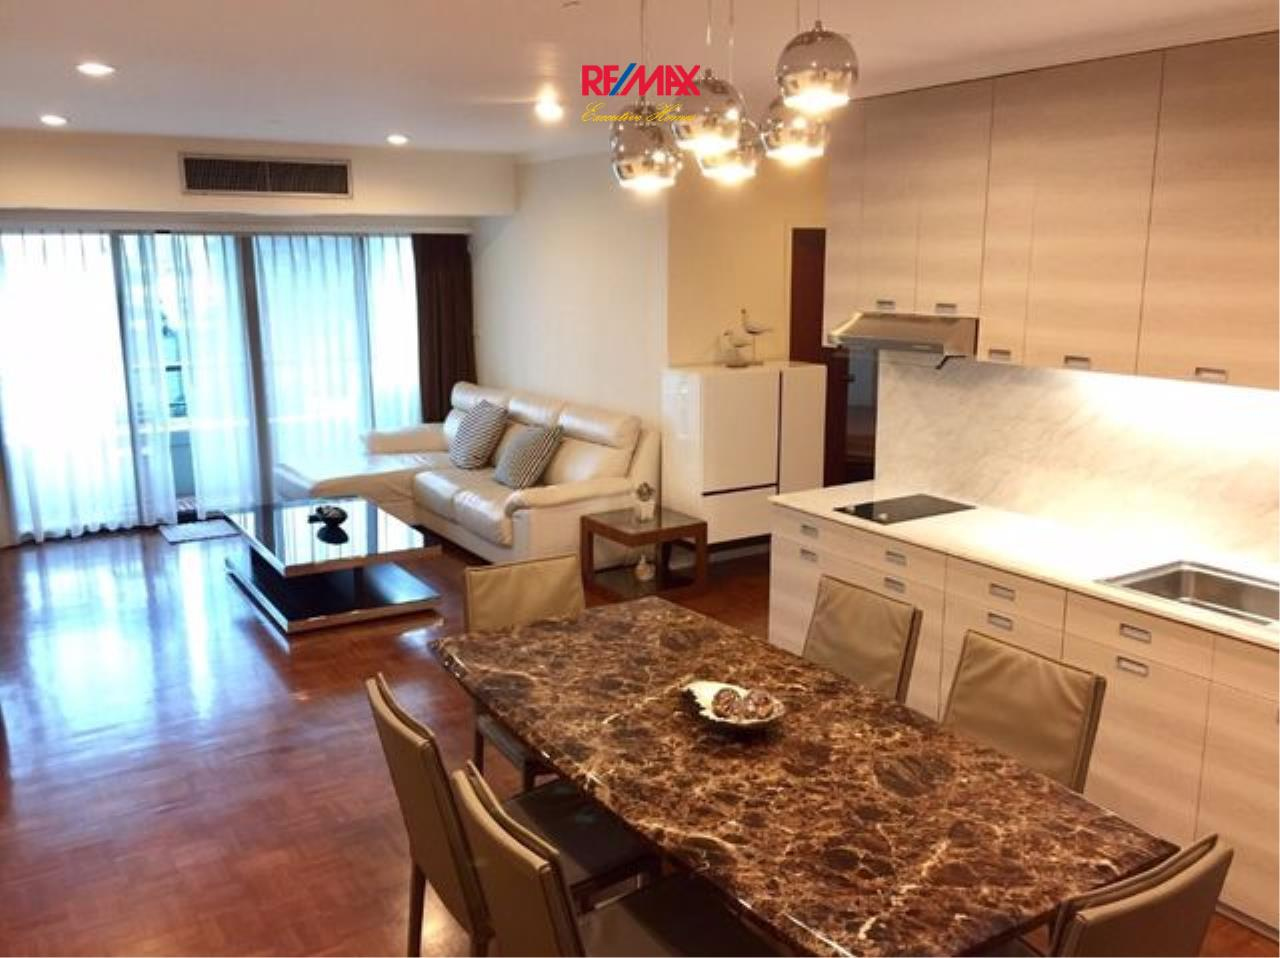 RE/MAX Executive Homes Agency's Lovely 2 Bedroom for Sale Sathorn Gardens 2